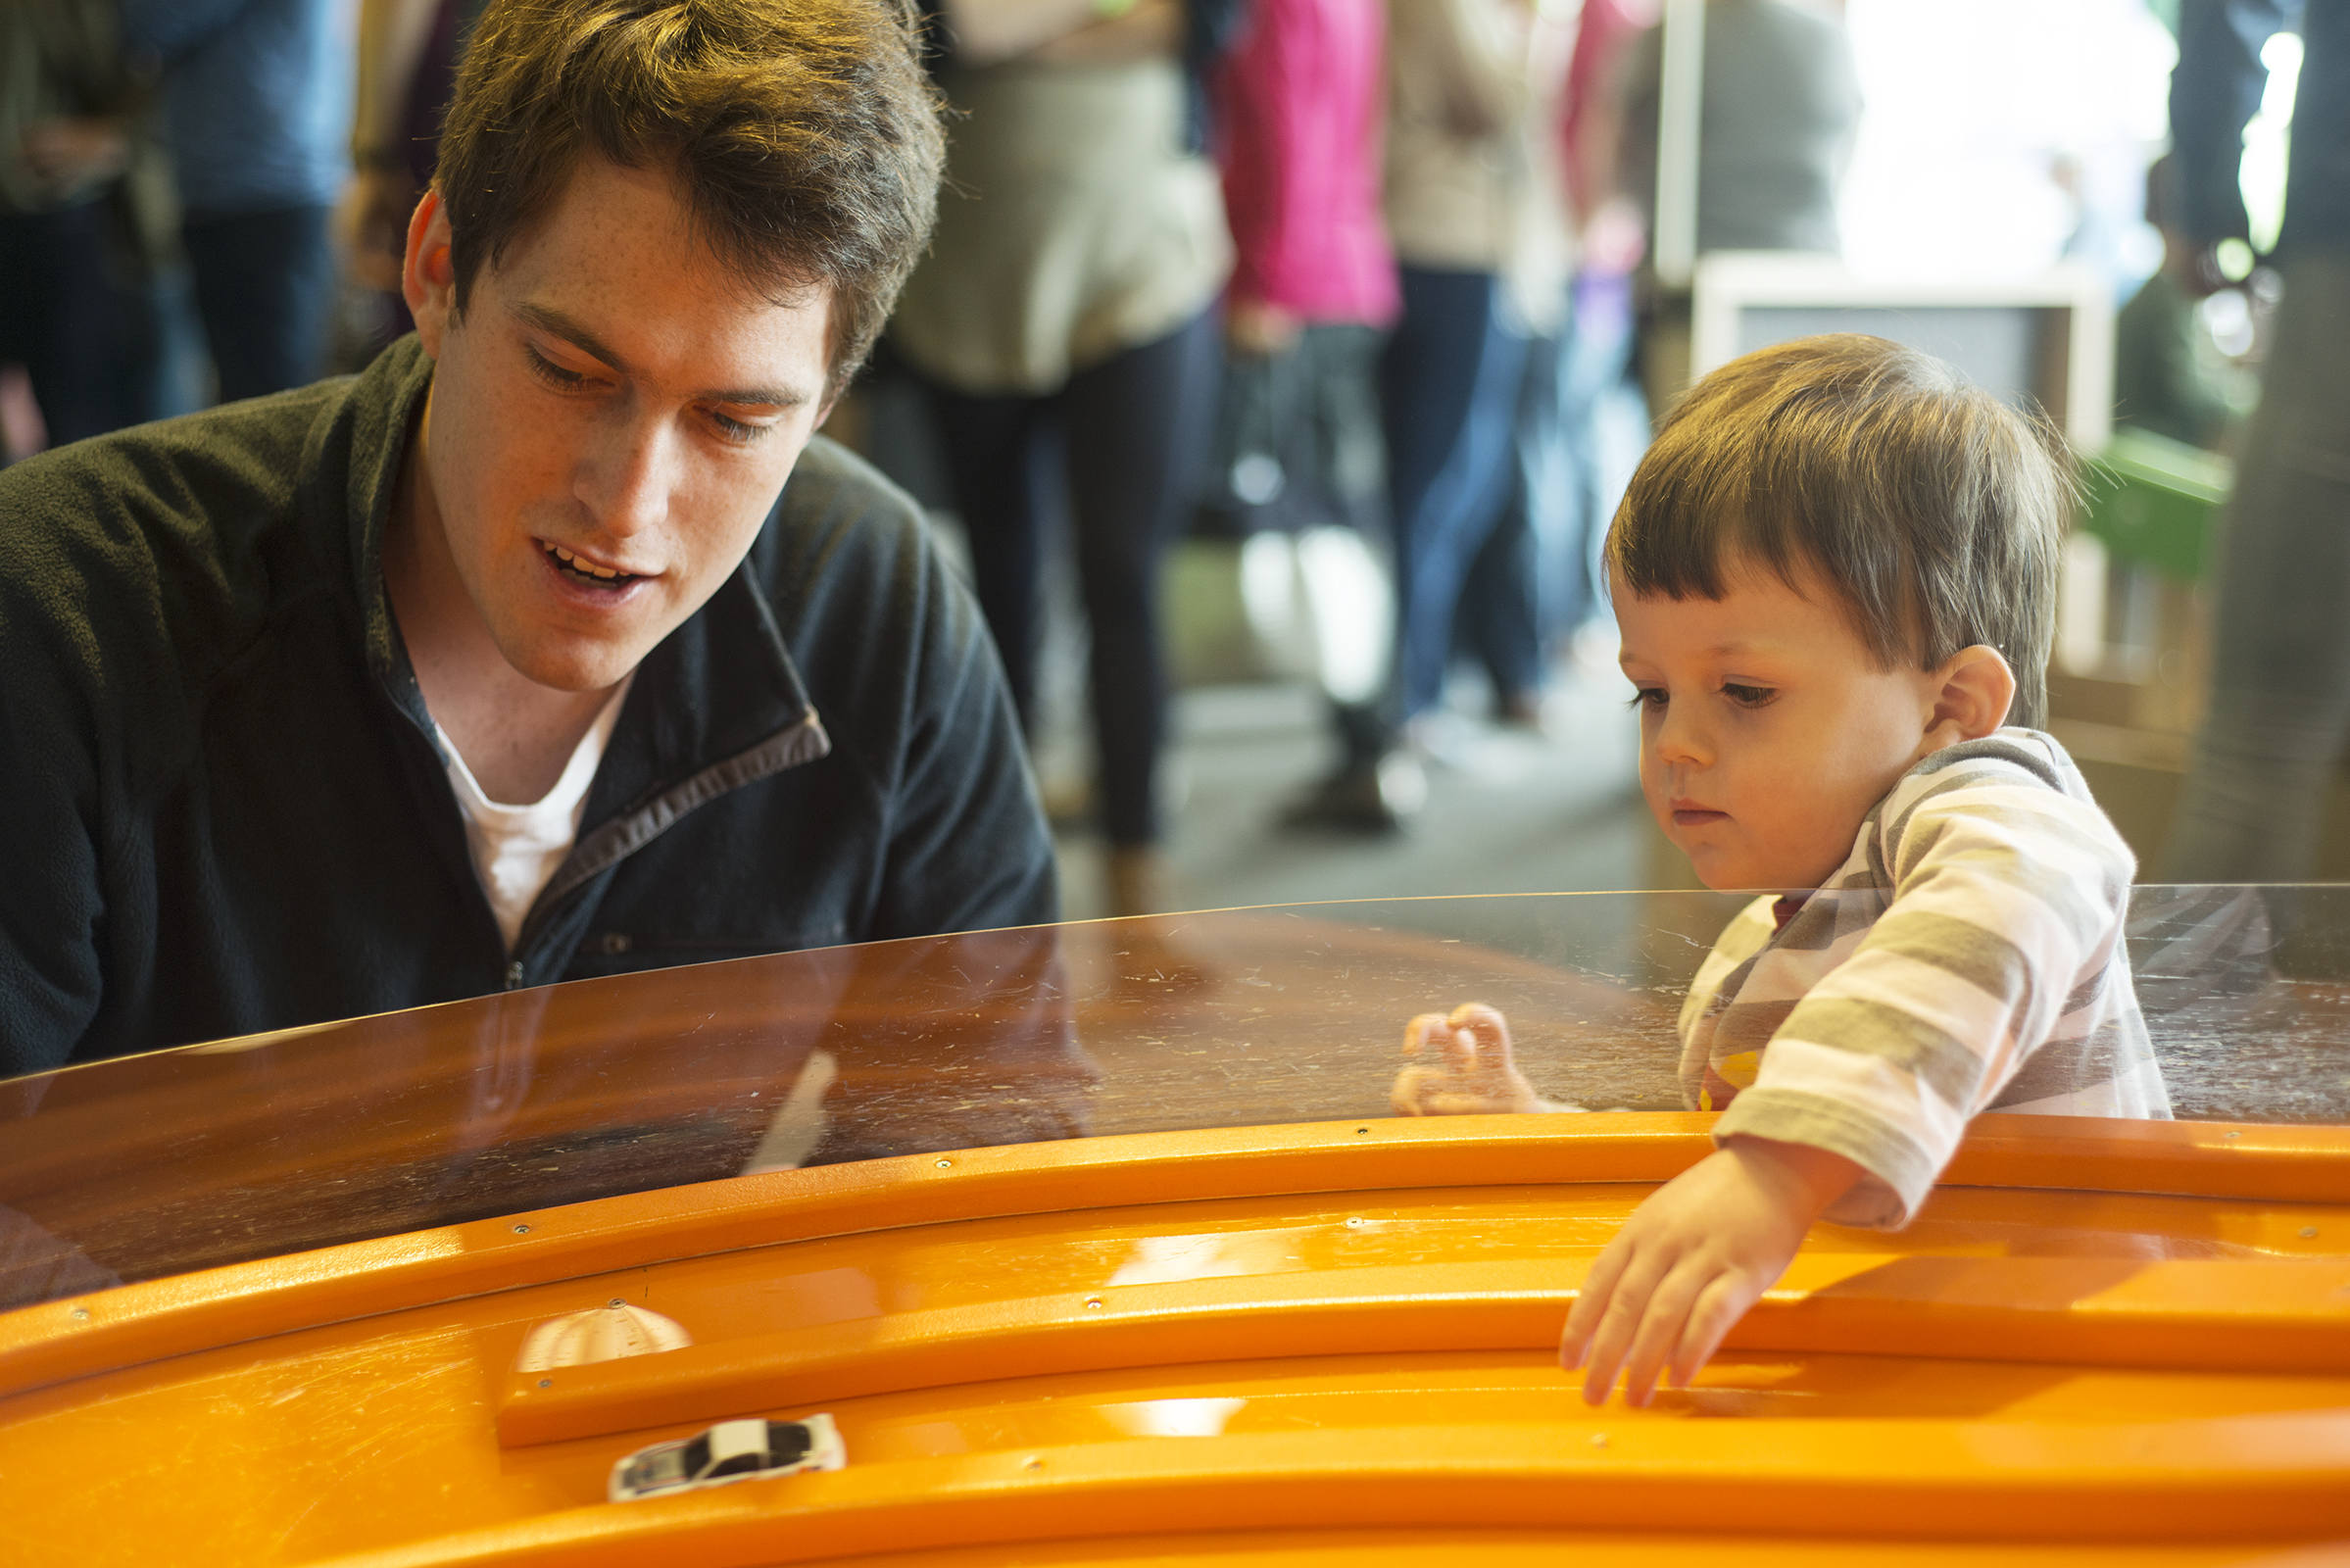 Meaningful gifts for kids: A membership to a children's museum